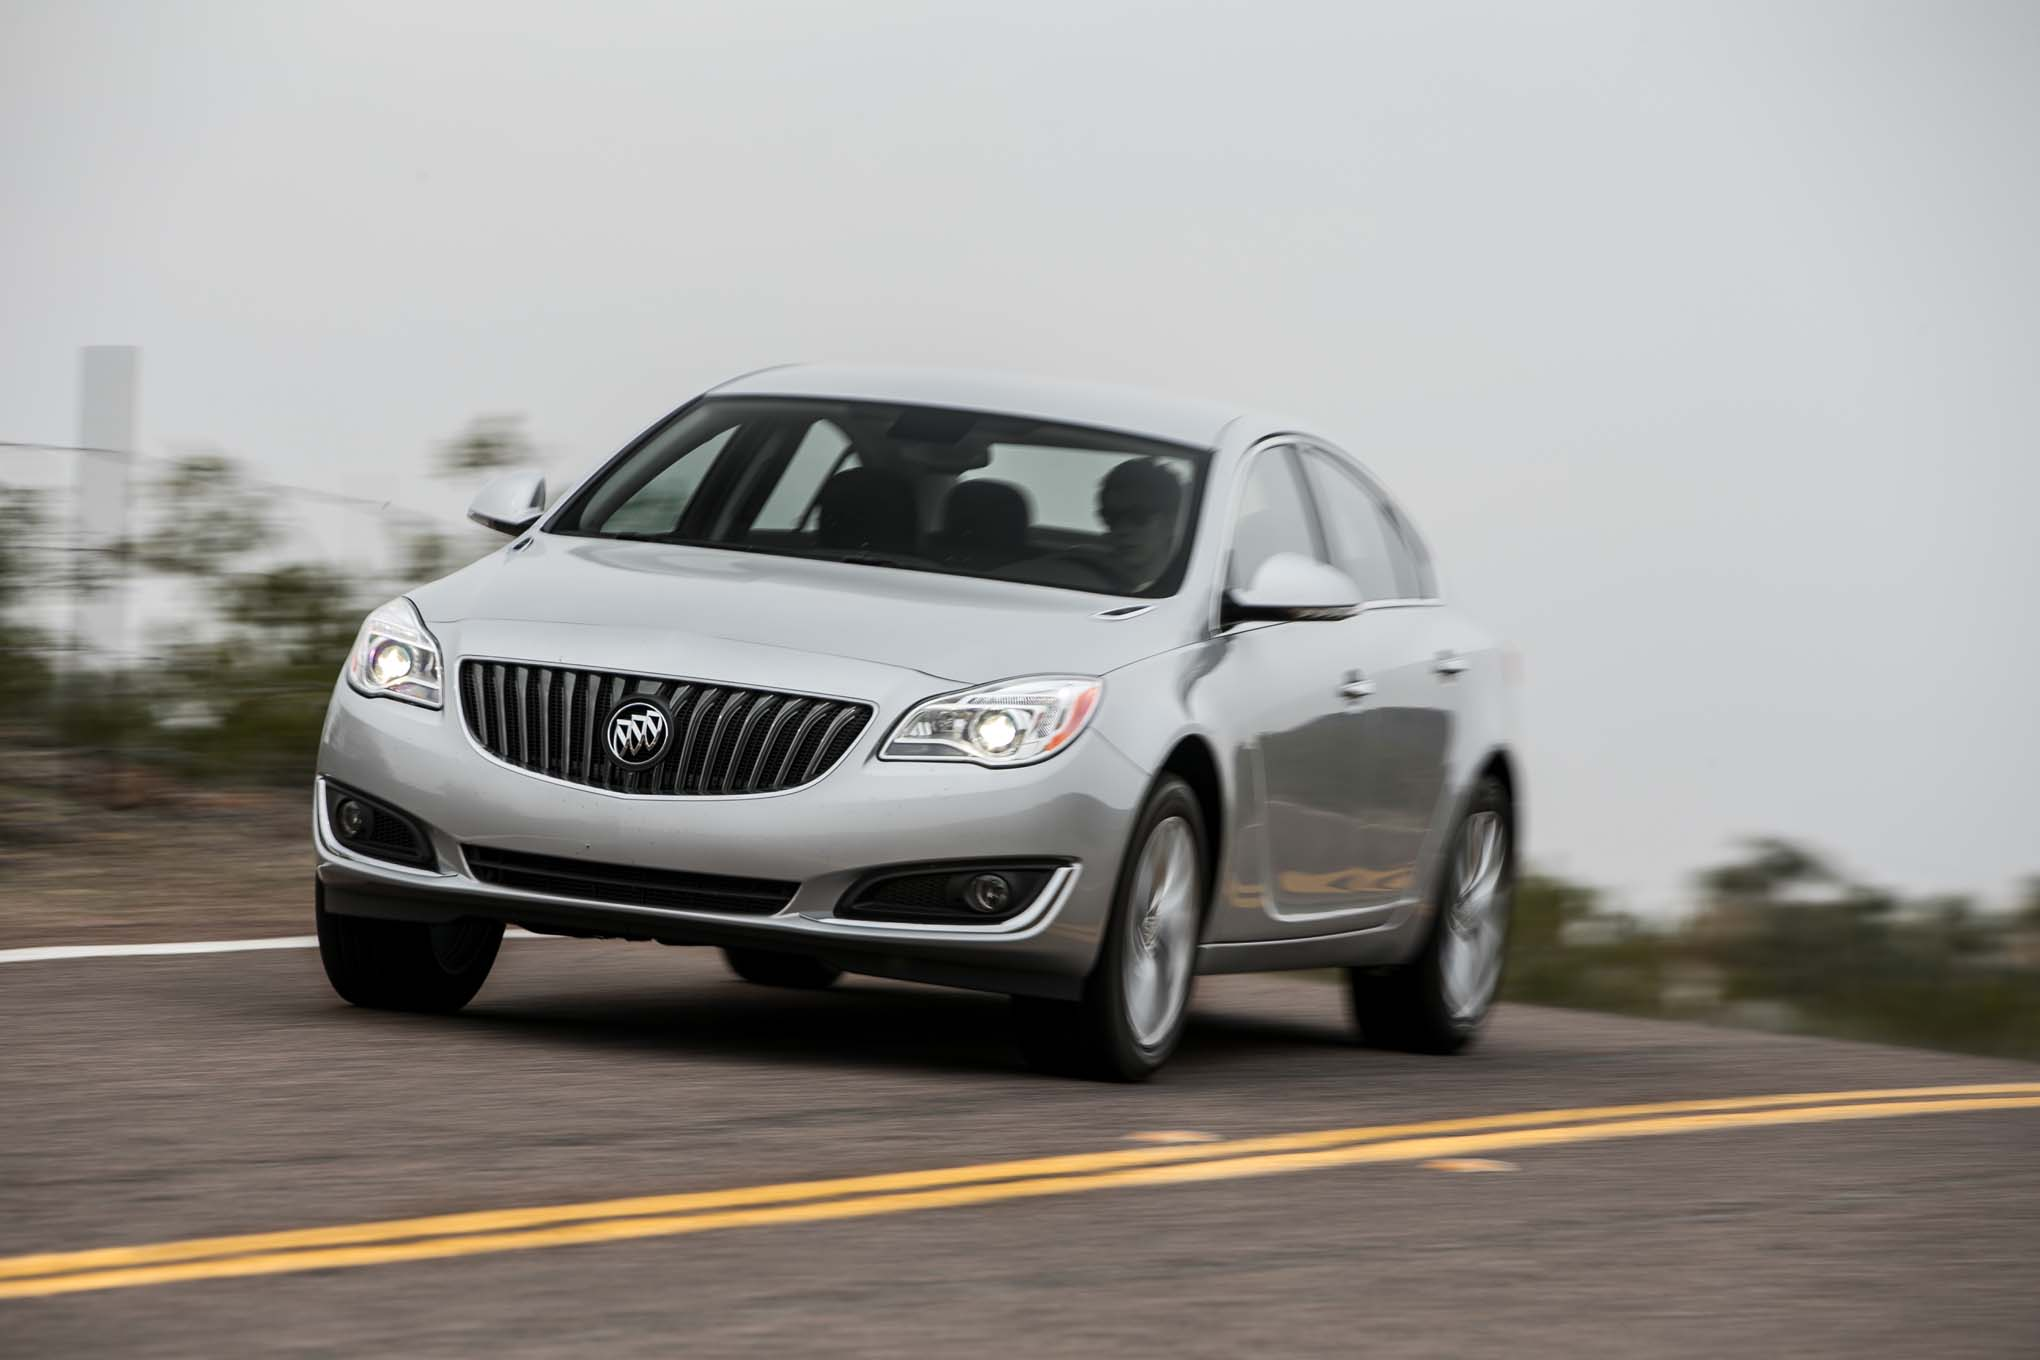 Delightful 2014 Buick Regal Turbo FWD First Test